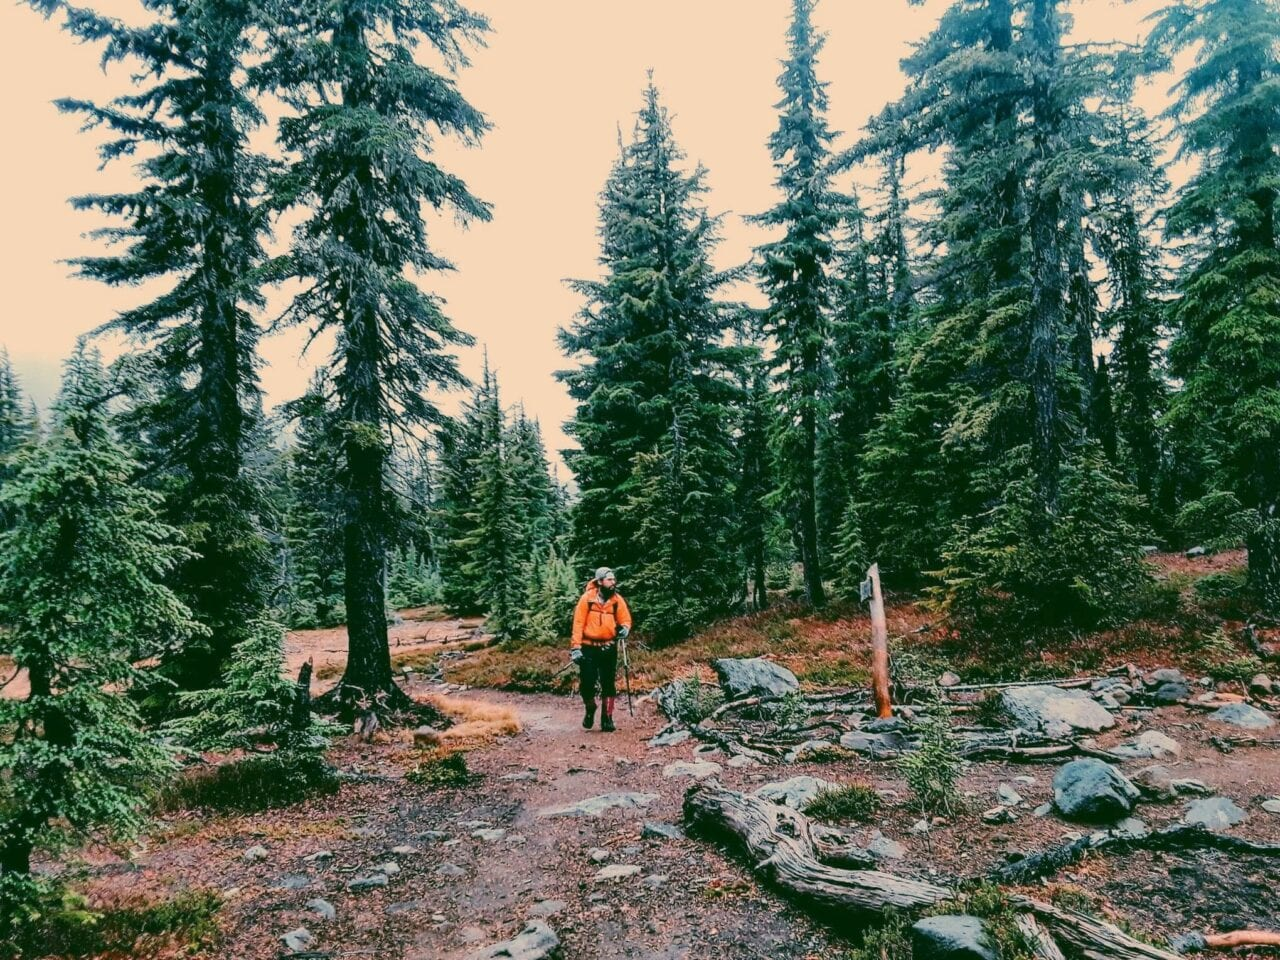 A hiker standing on the trail among the trees.